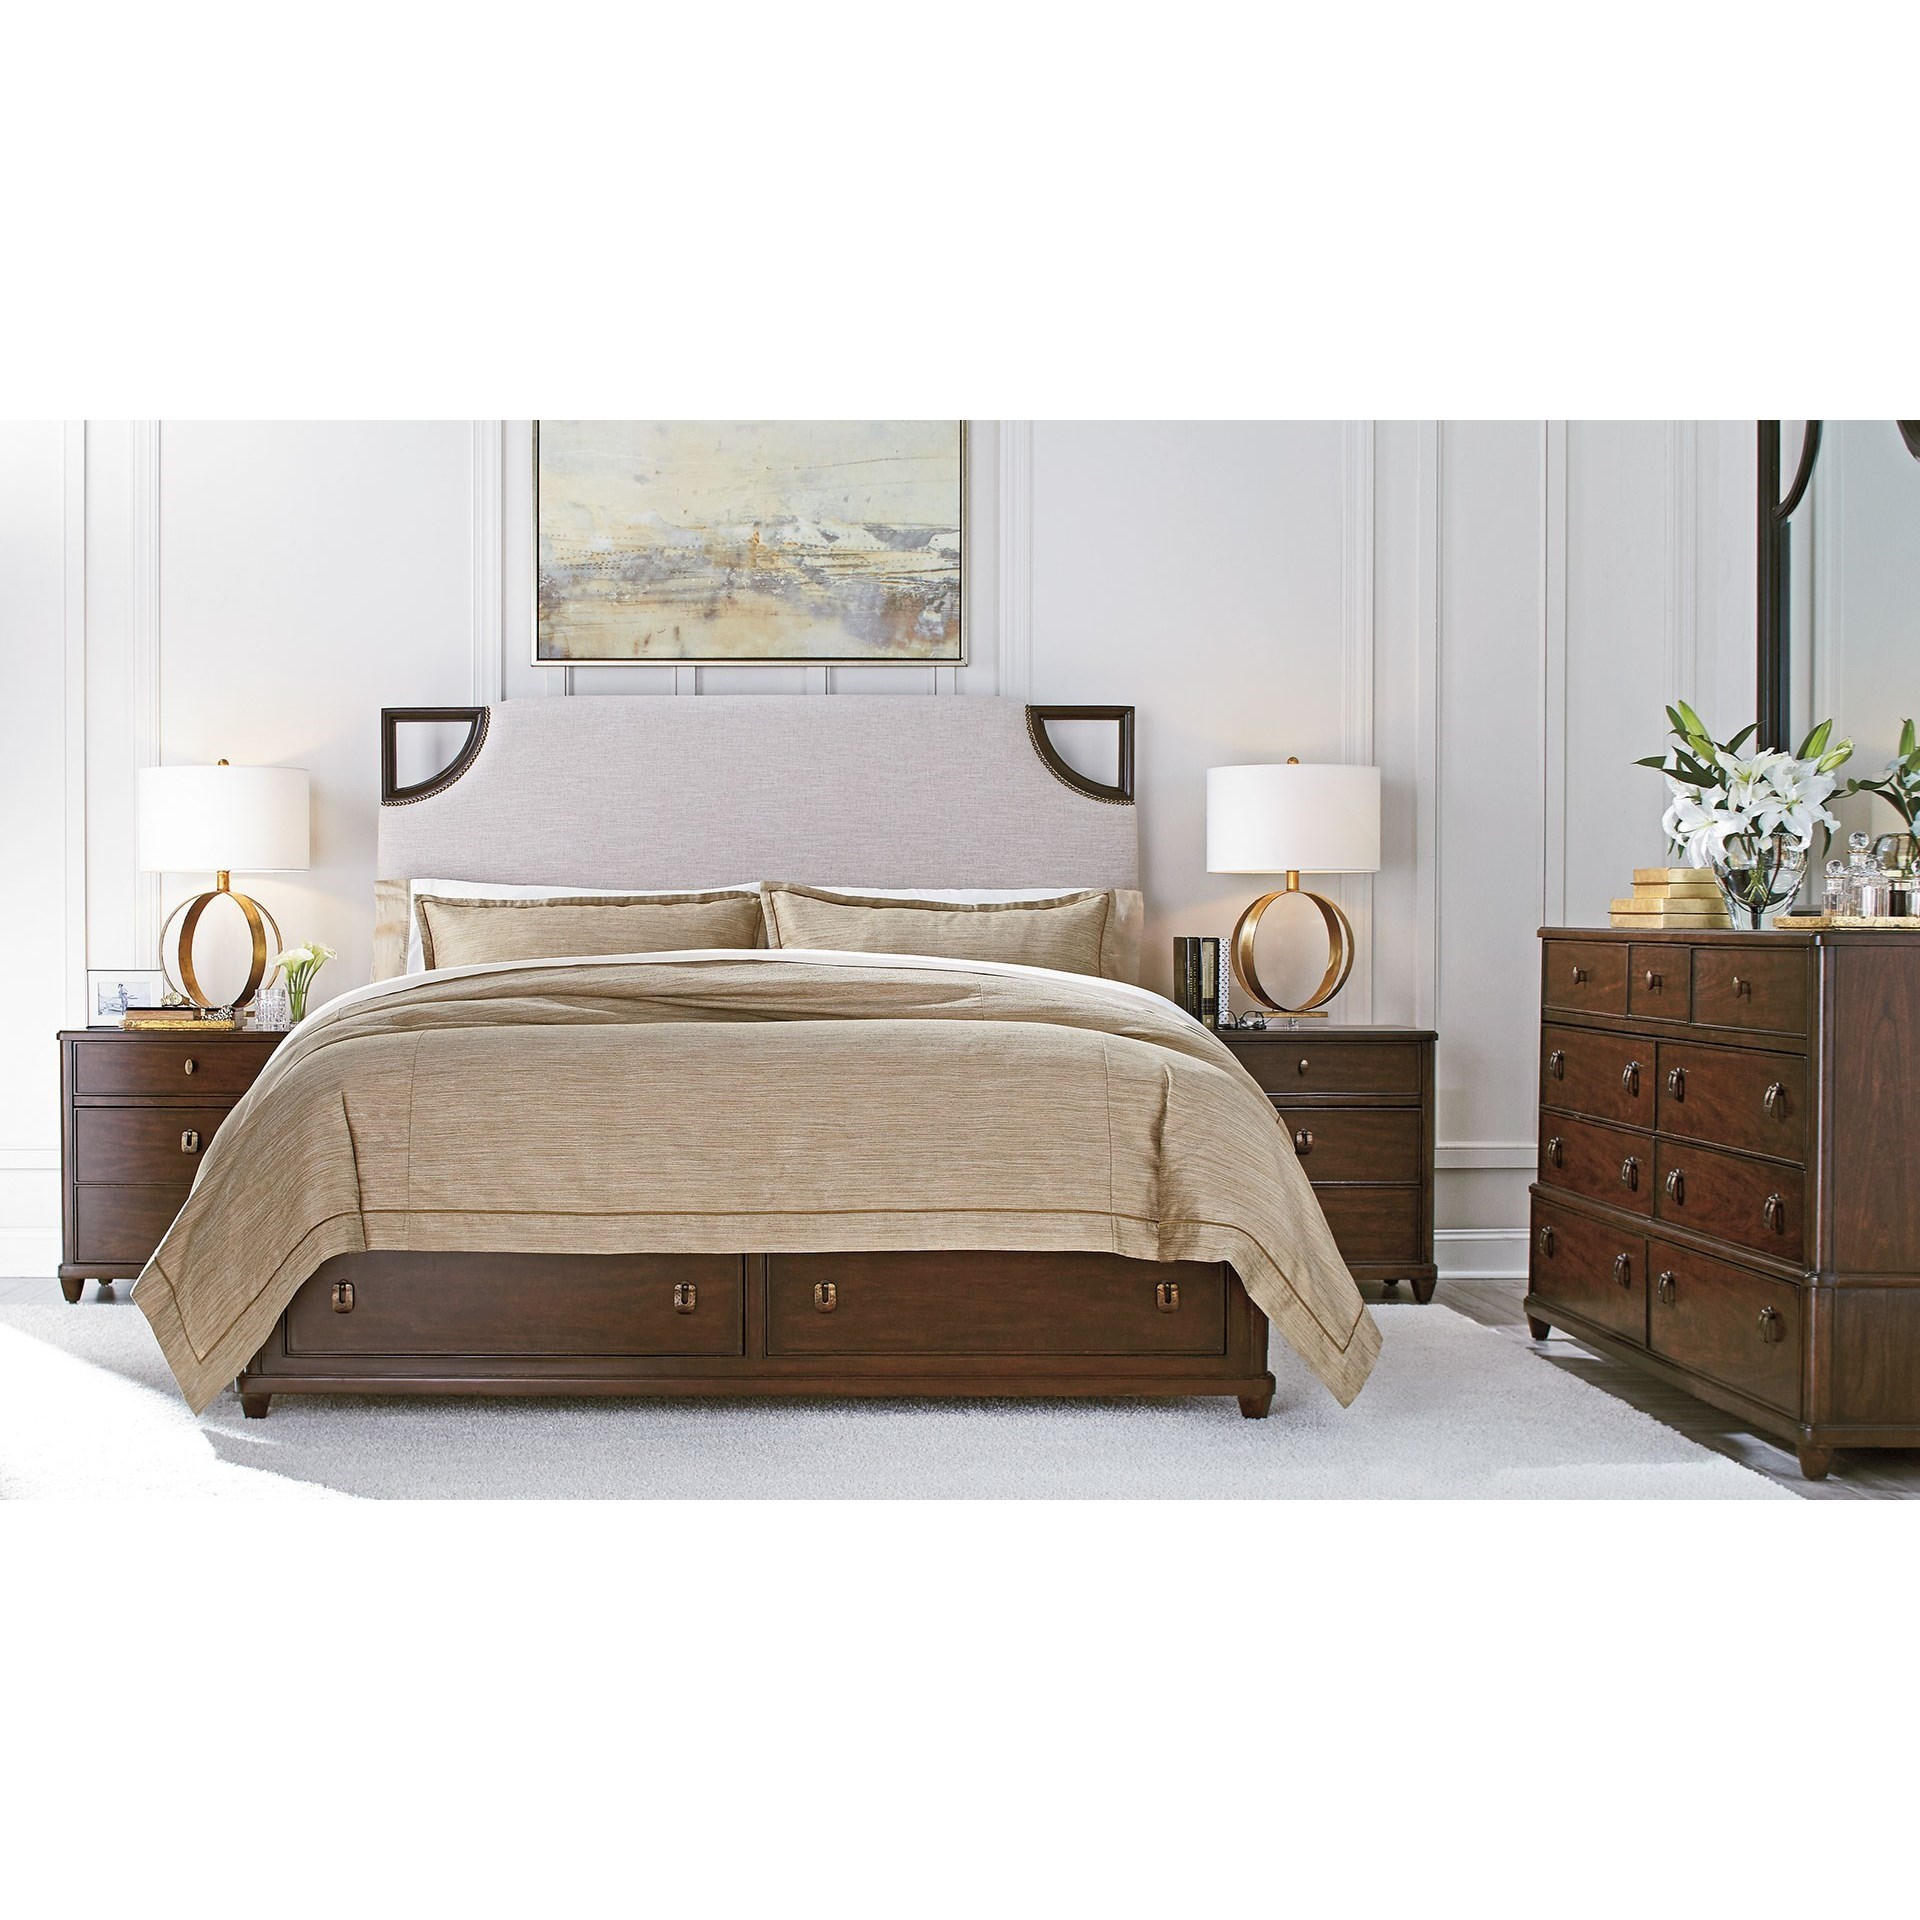 Stanley furniture virage queen bedroom group dunk for Bedroom furniture groups